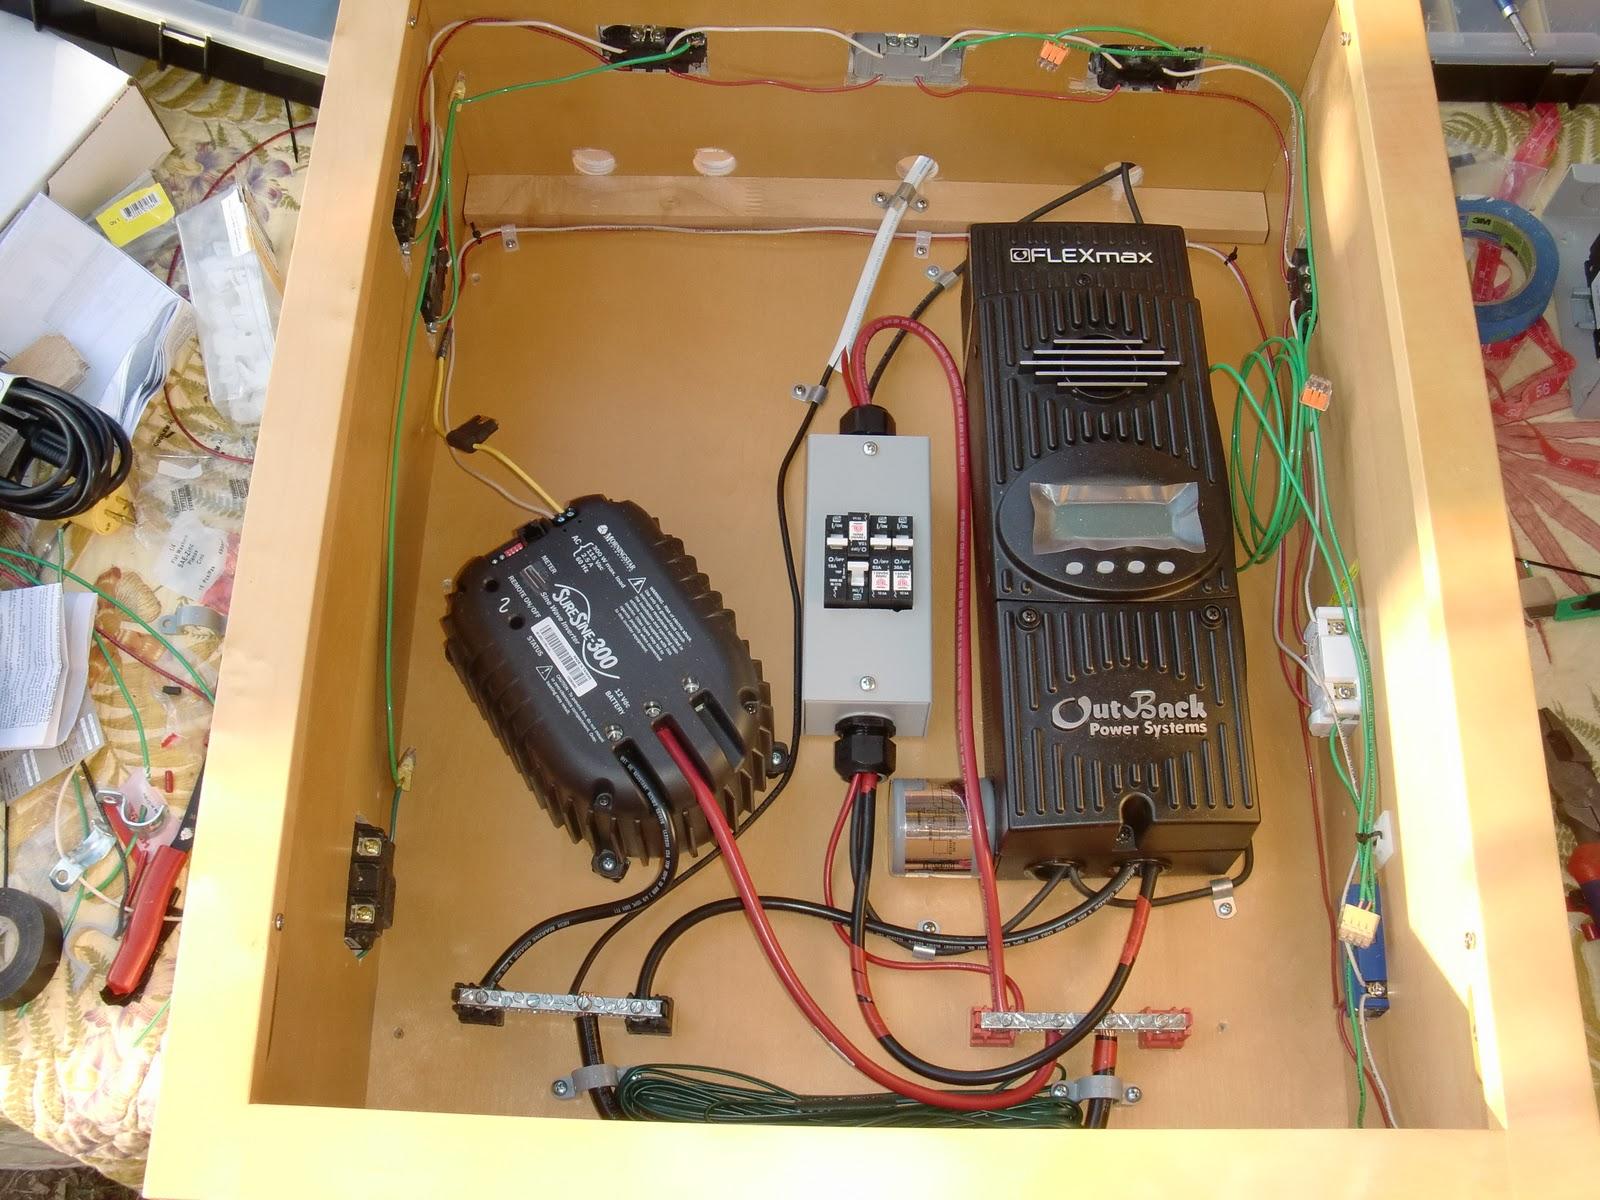 2013 Carmate 100 Solar Heated And Cooled Over The Top Cargo Trailer Boat Electrical Wiring Diagrams 404 Page Not Found Error Ever Monday December 26 2011